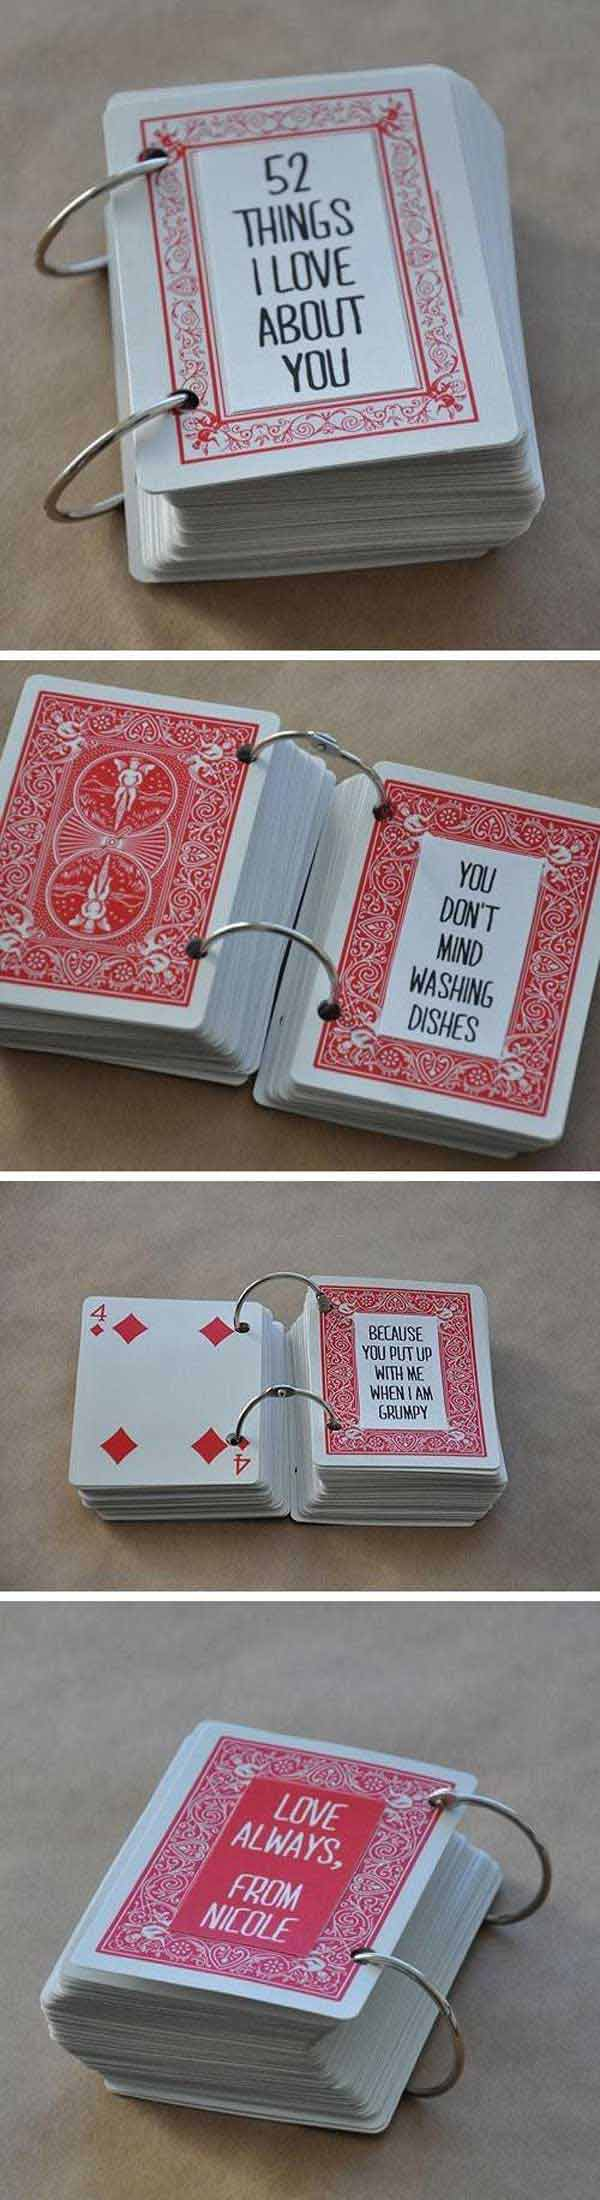 25 Easy DIY Valentines Day Gift and Card Ideas – Good Ideas for Valentines Day Cards